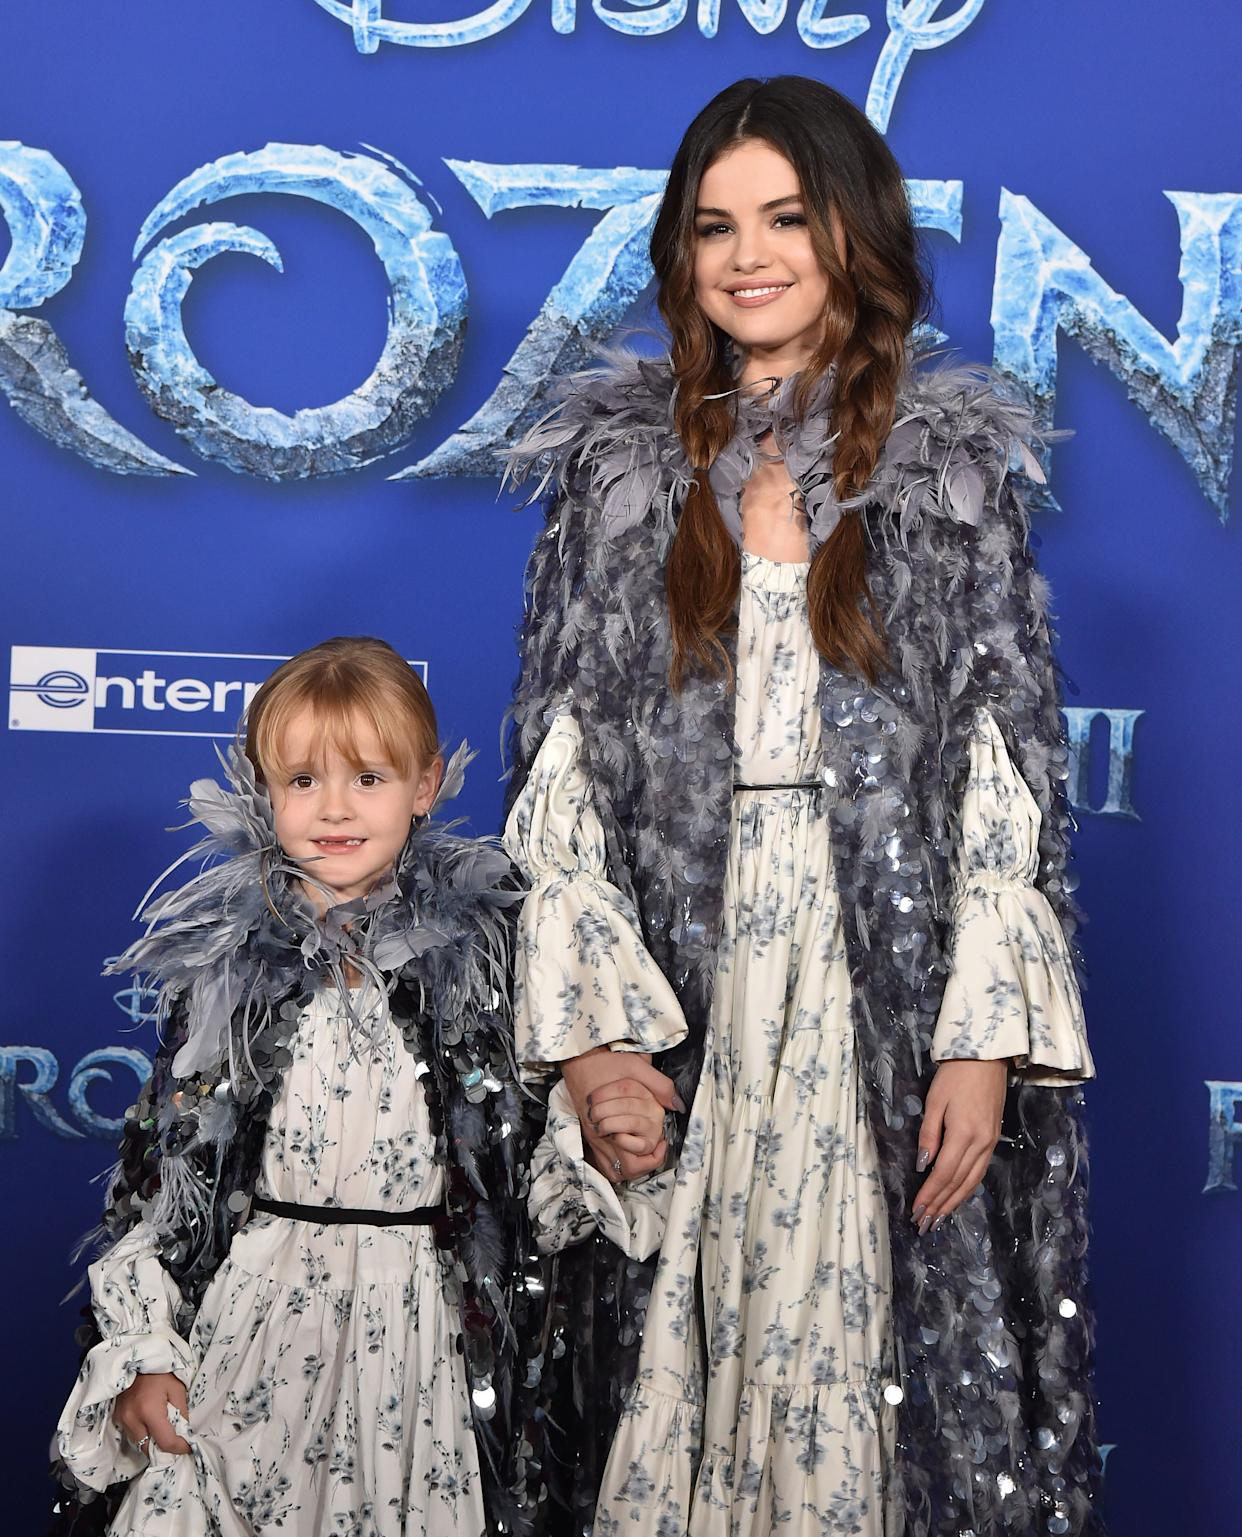 """Gracie Teefey and Selena Gomez attend the premiere of Disney's """"Frozen 2"""" on Nov. 7 in Hollywood, California. (Photo: Axelle/Bauer-Griffin via Getty Images)"""